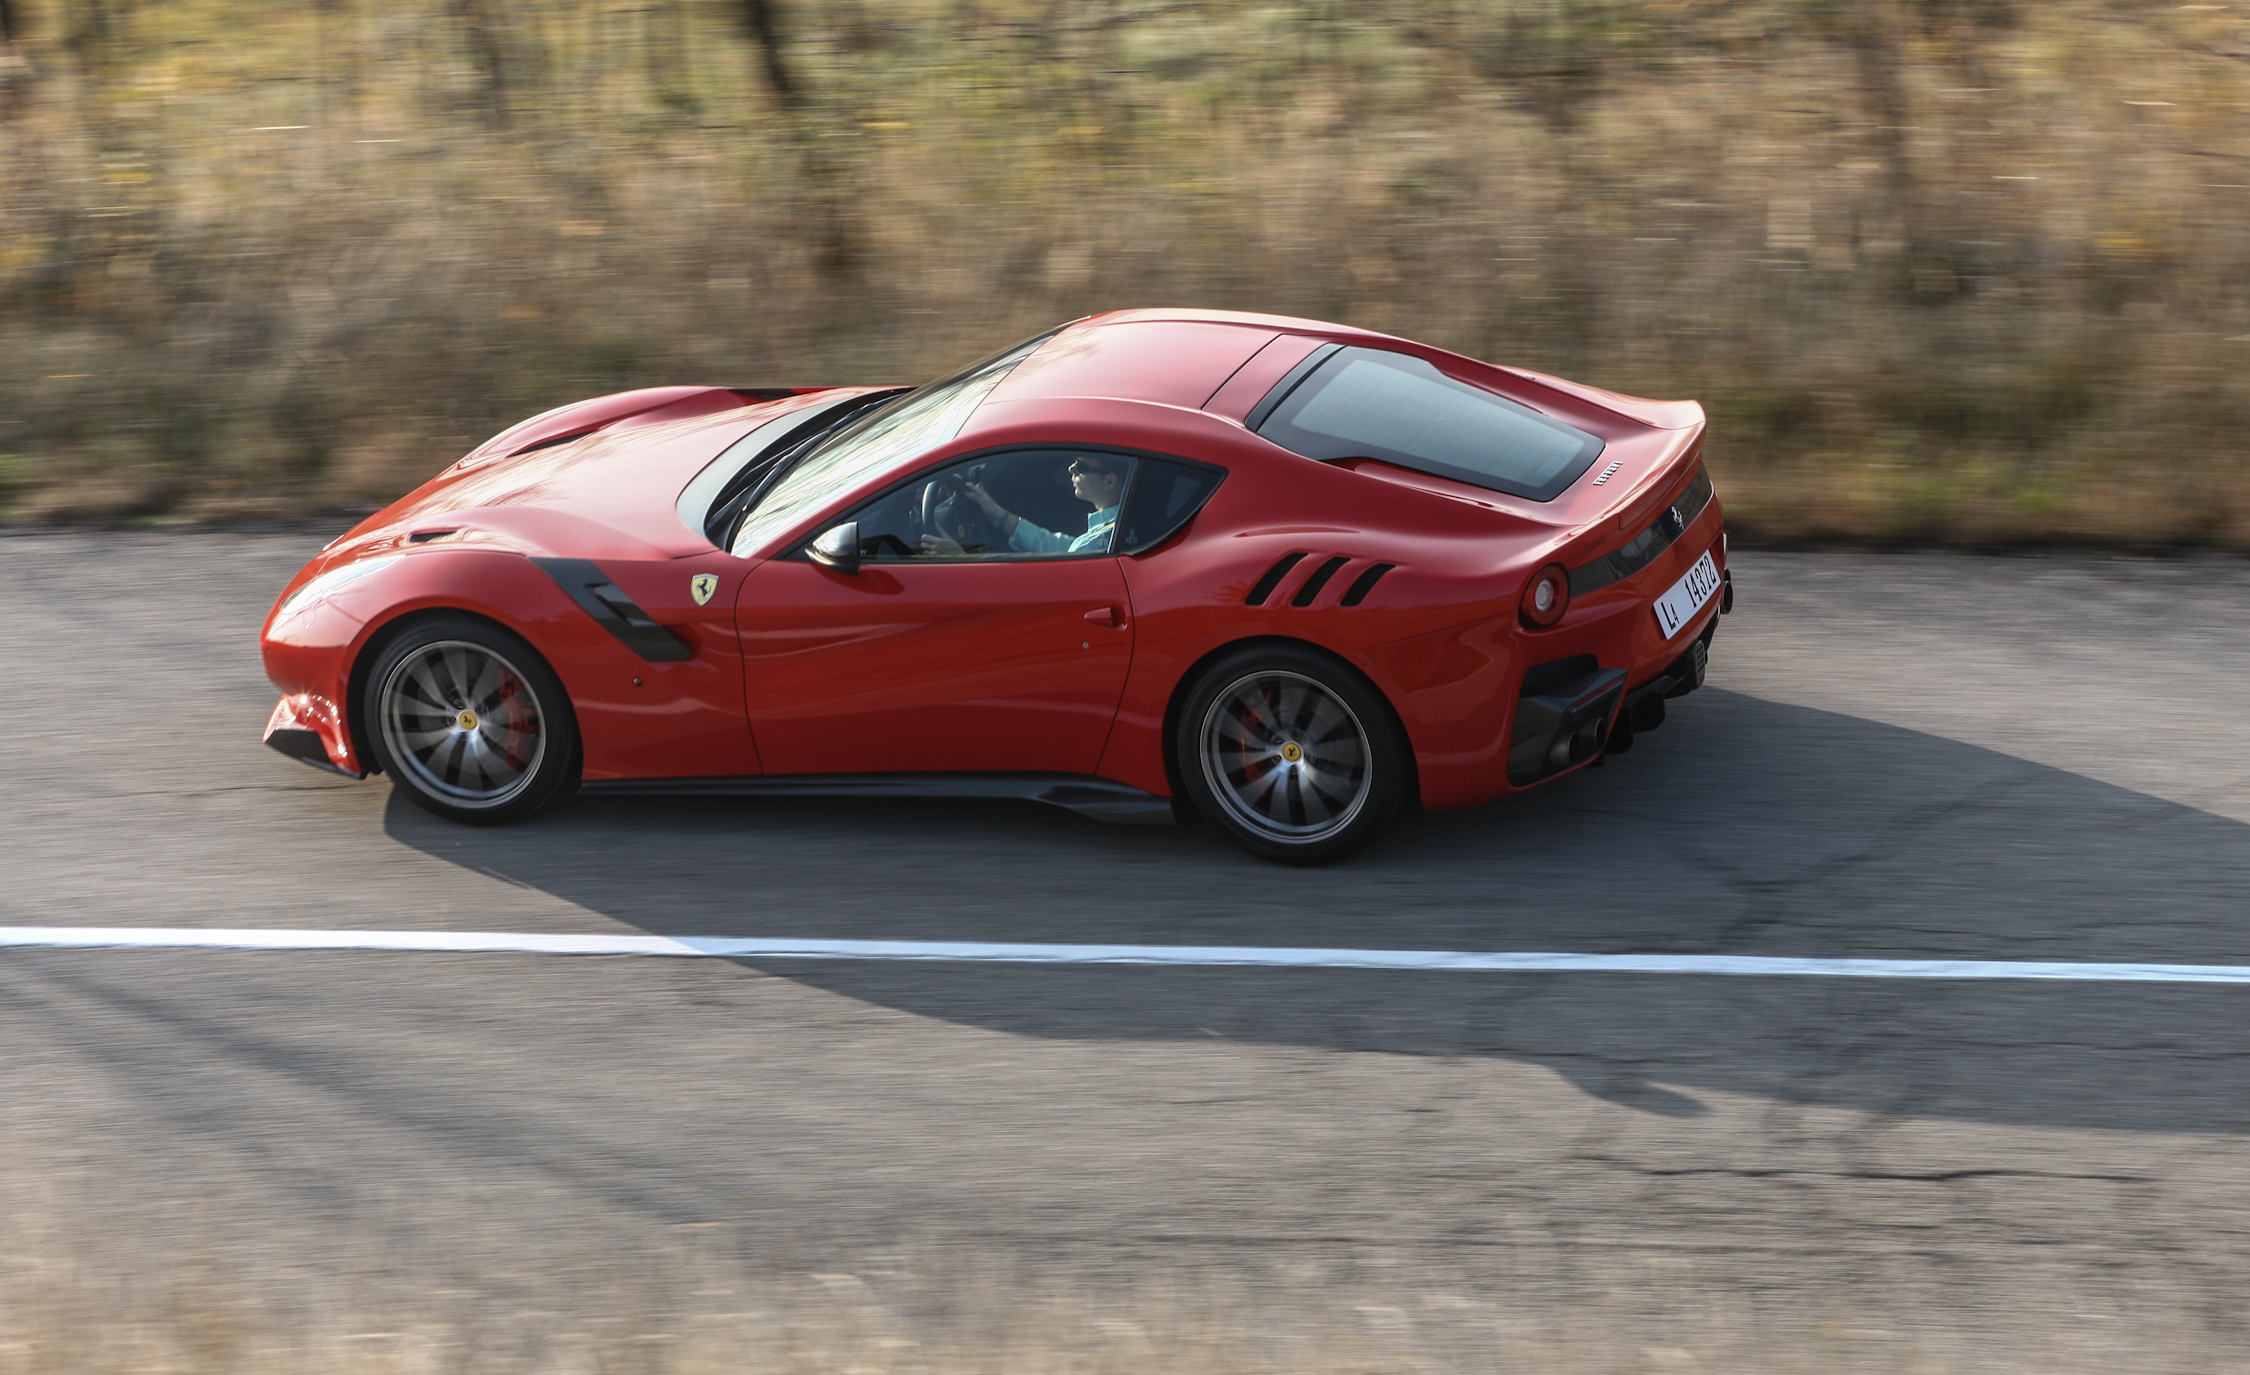 2016 Ferrari F12tdf First Drive: Many More Things From First Drive Review 2016 Ferrari